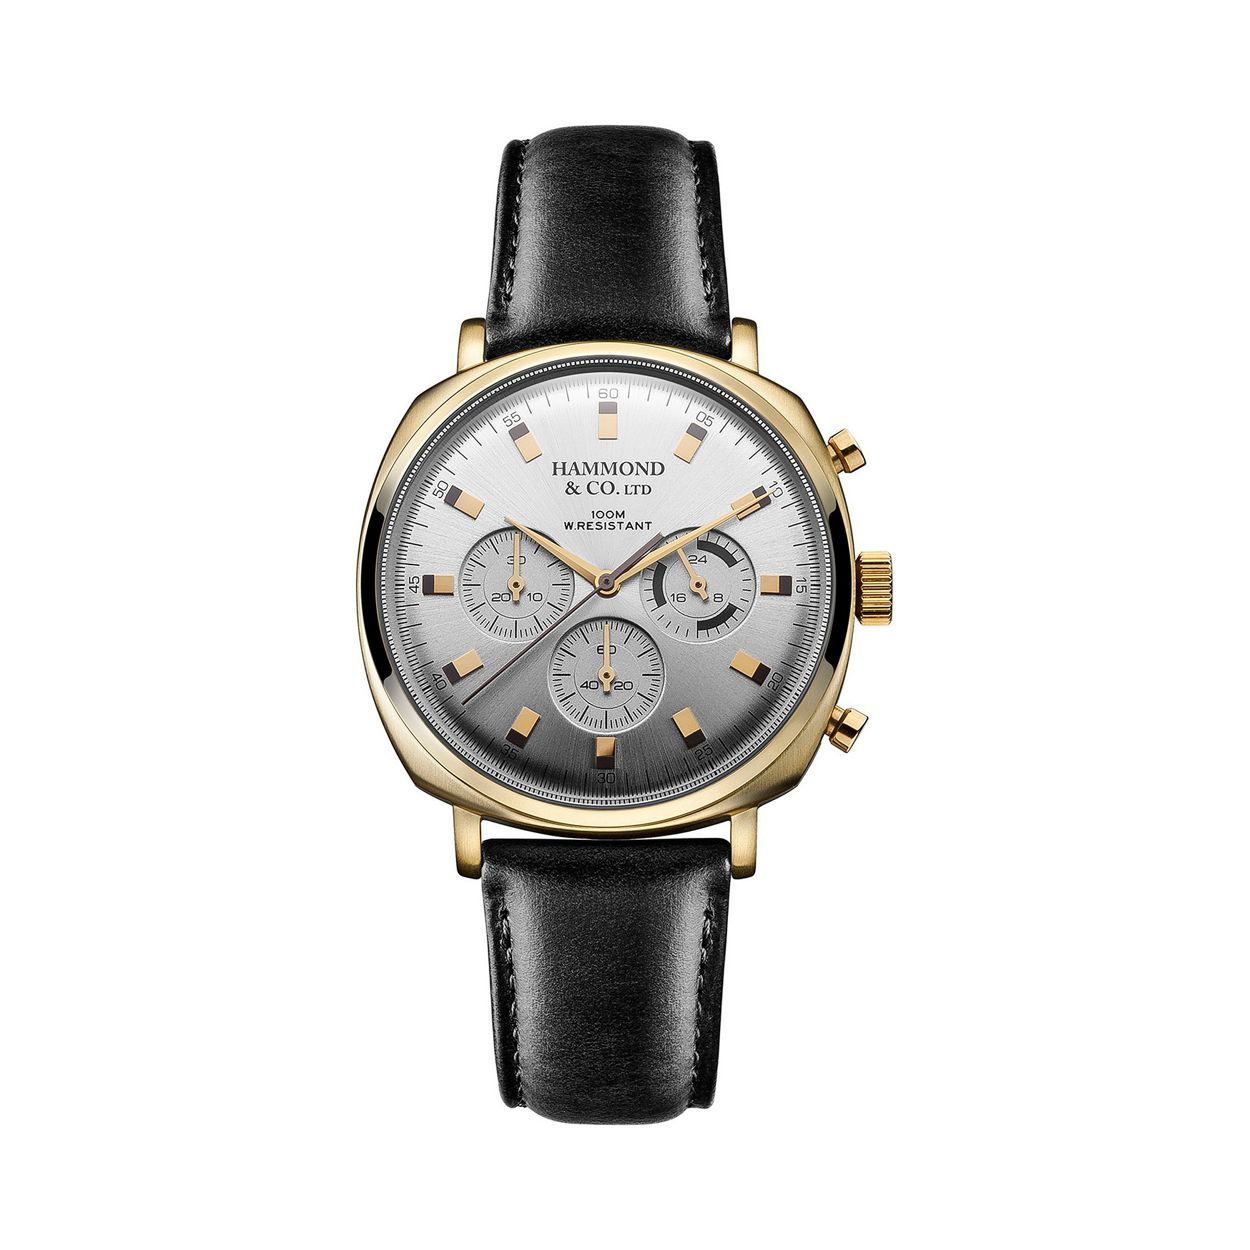 Hammond & Co. by Patrick Grant Men's square chronograph watch with black leather strap